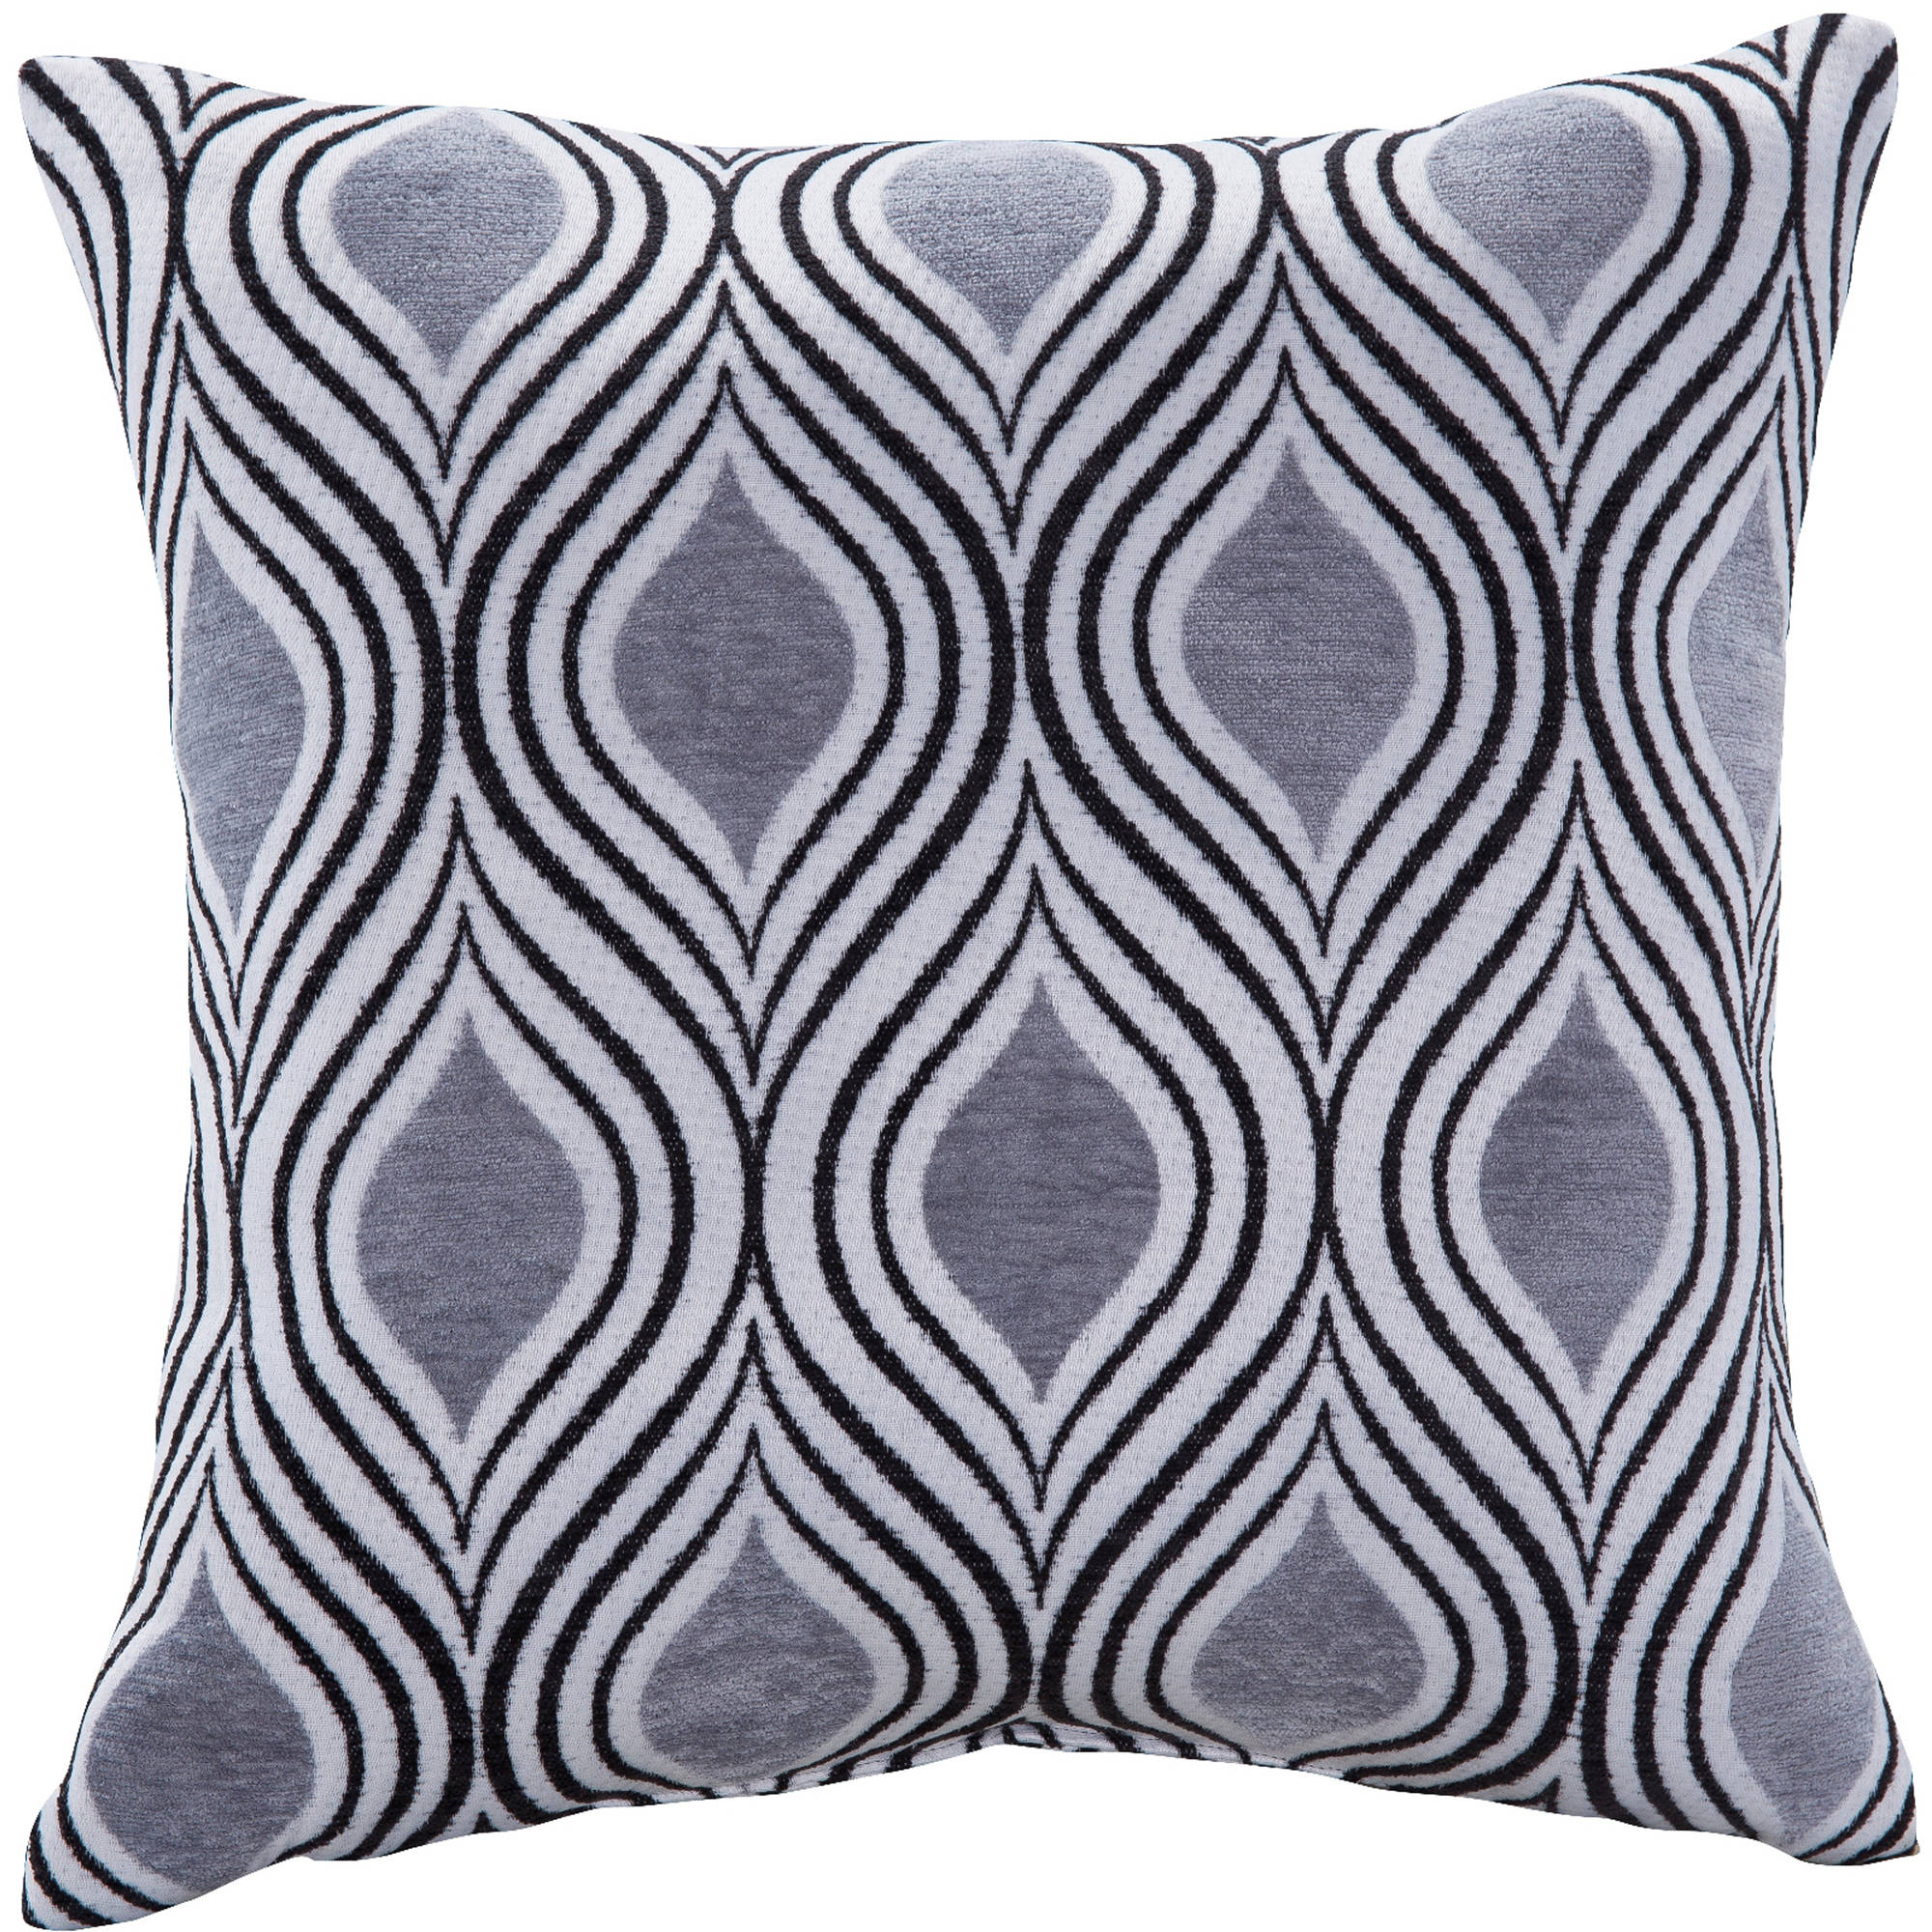 Better Homes and Gardens Moroccan Decorative Pillow, Grey